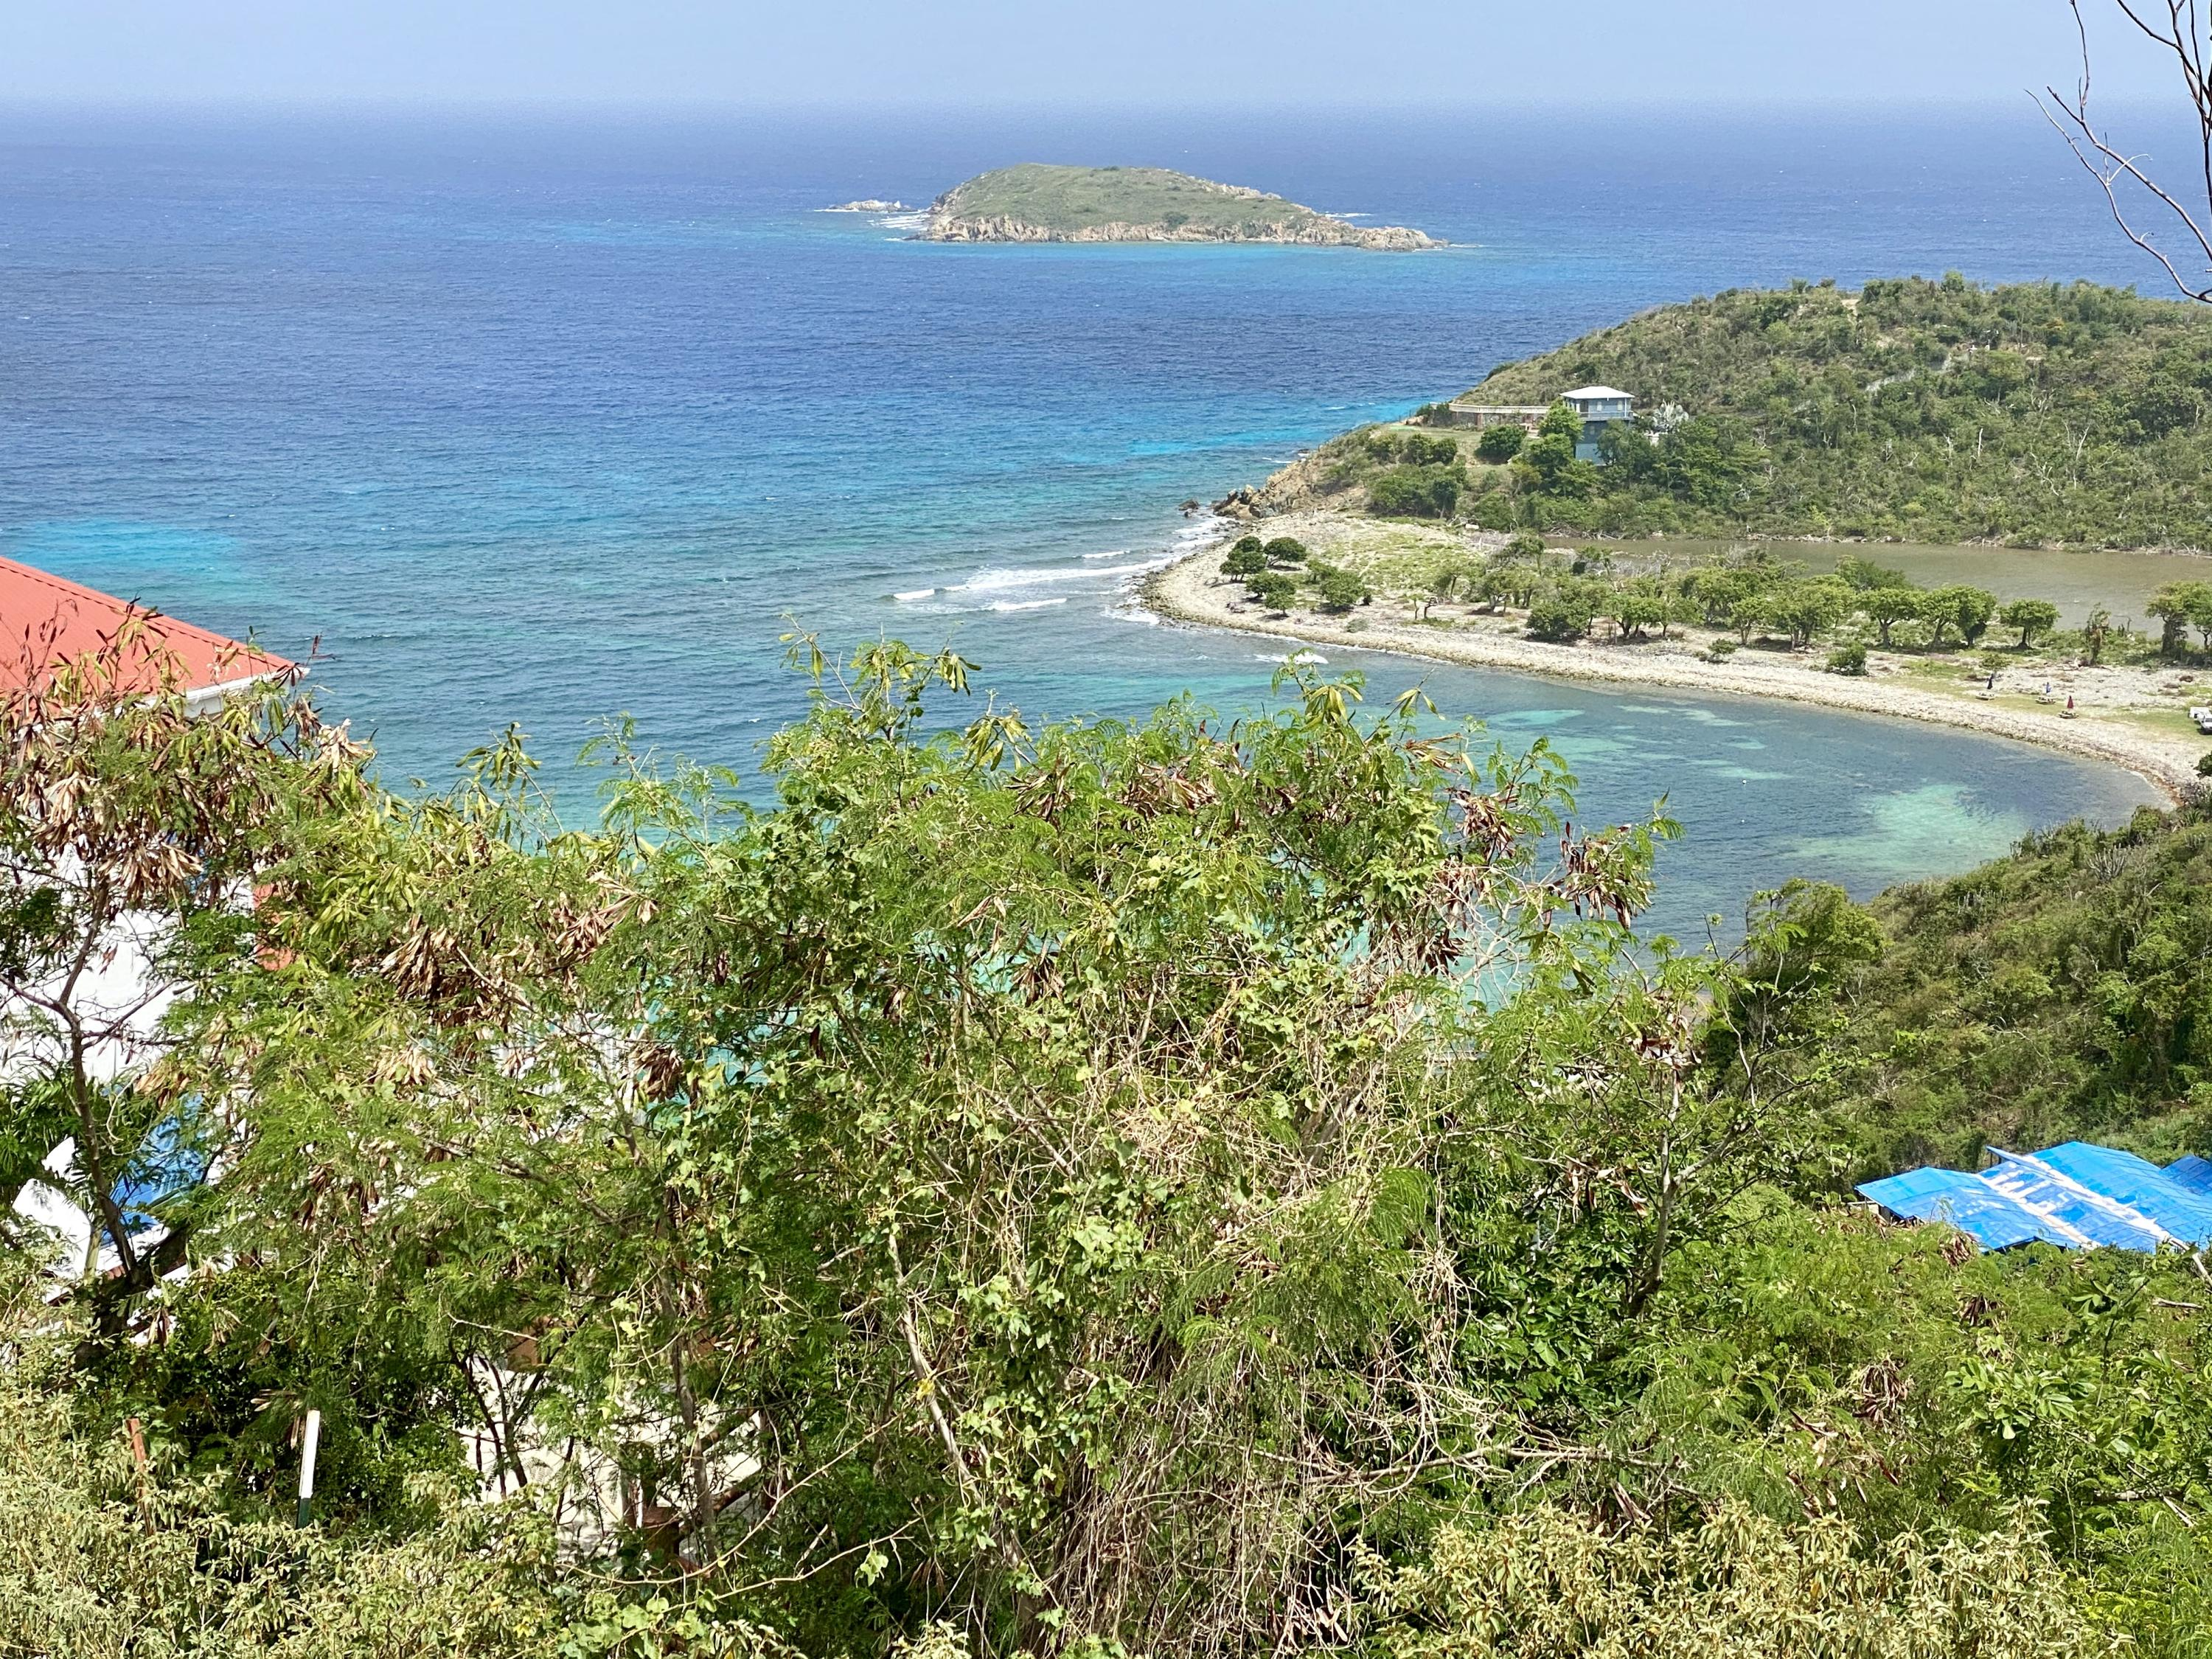 RE/MAX real estate, US Virgin Islands, St. Quaco & Zimmerman, Price Reduced  Land  St. Quaco  Zimmerman